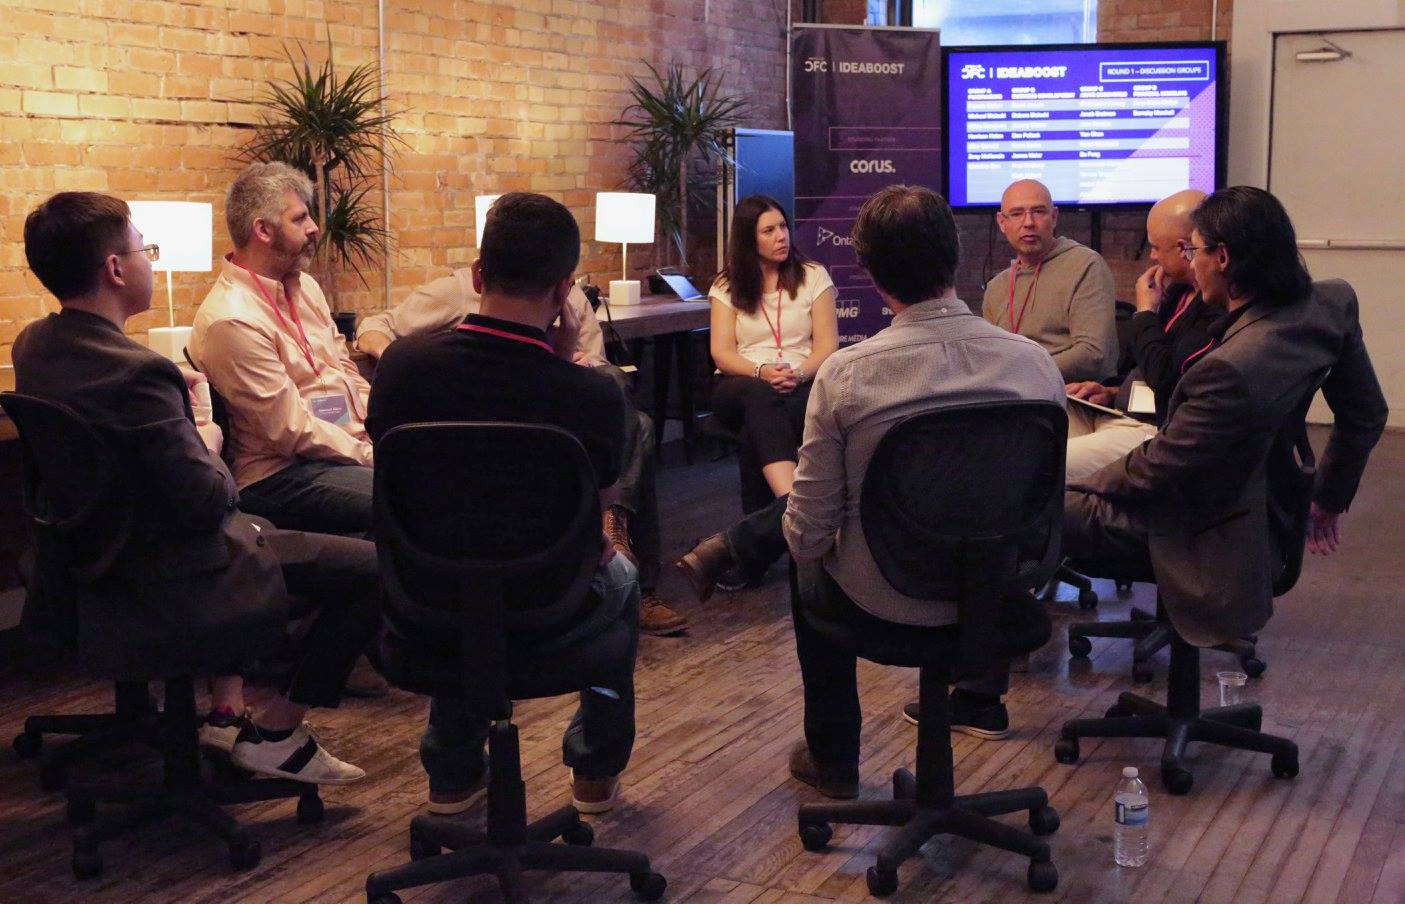 A group of people in a circle formation. They are all sitting in office chairs and facing each other.